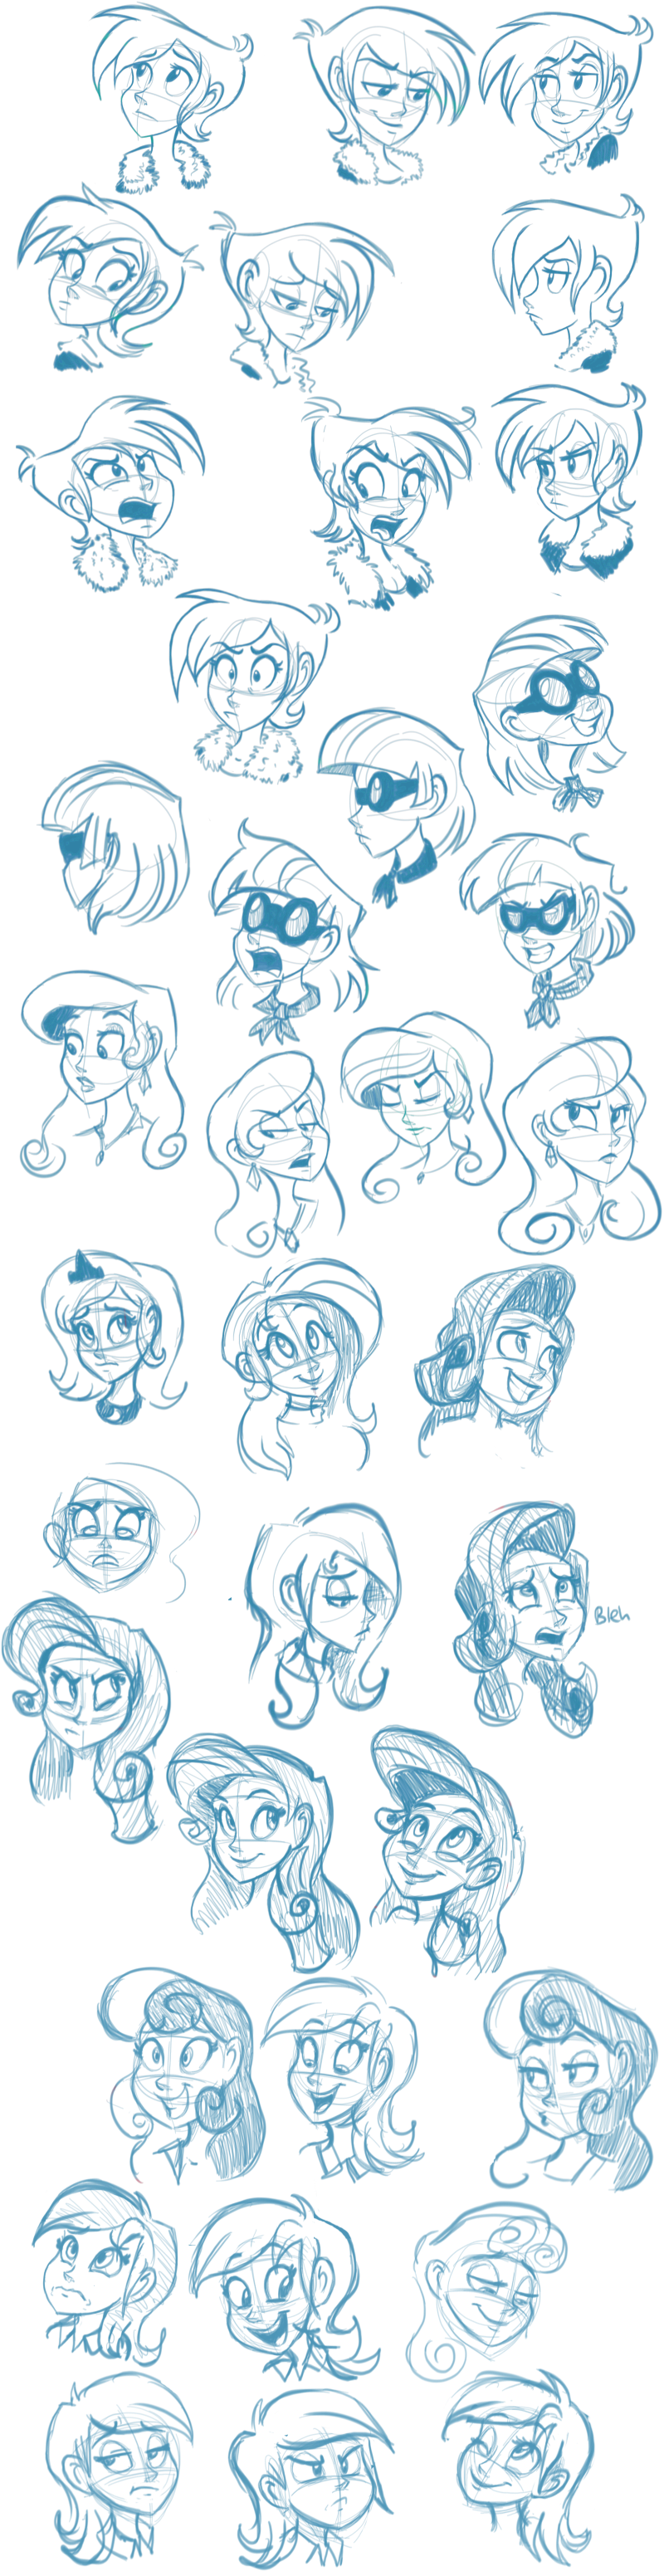 Another Pony Expressions Dump by Ric-M